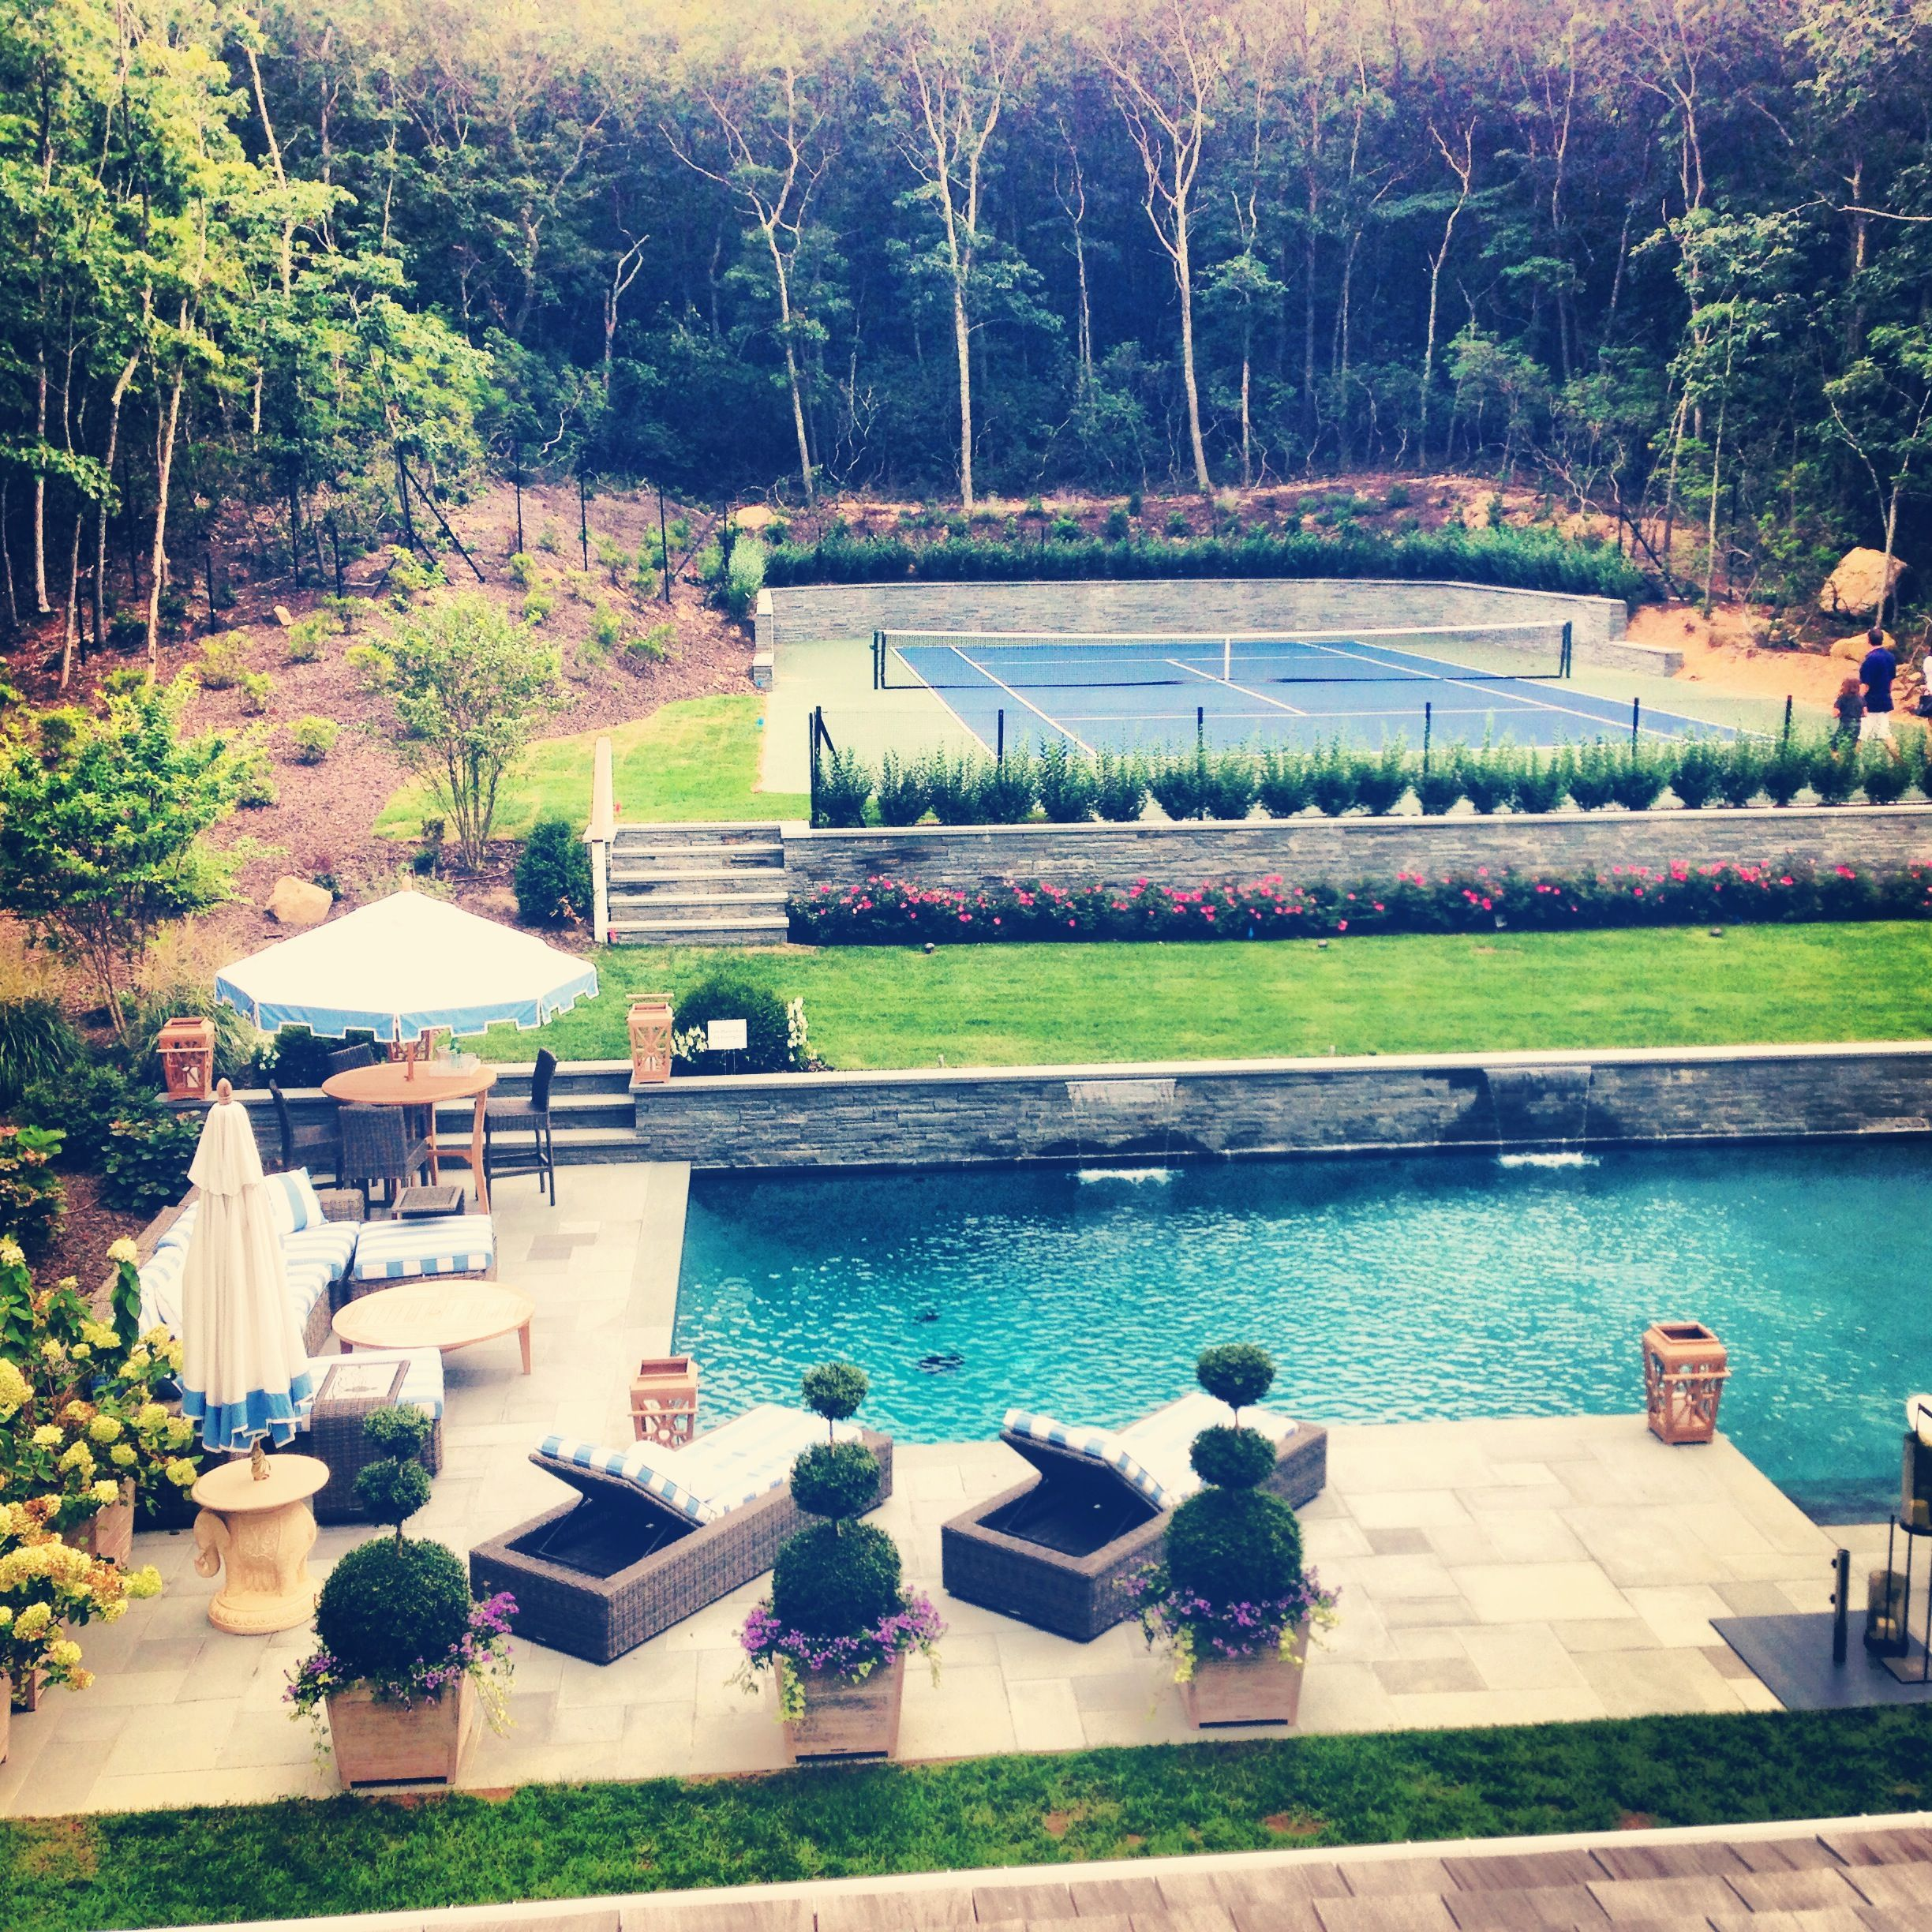 Only Need To Switch The Tennis Courts For A Basketball Court Tennis Court Backyard Backyard Pool Backyard